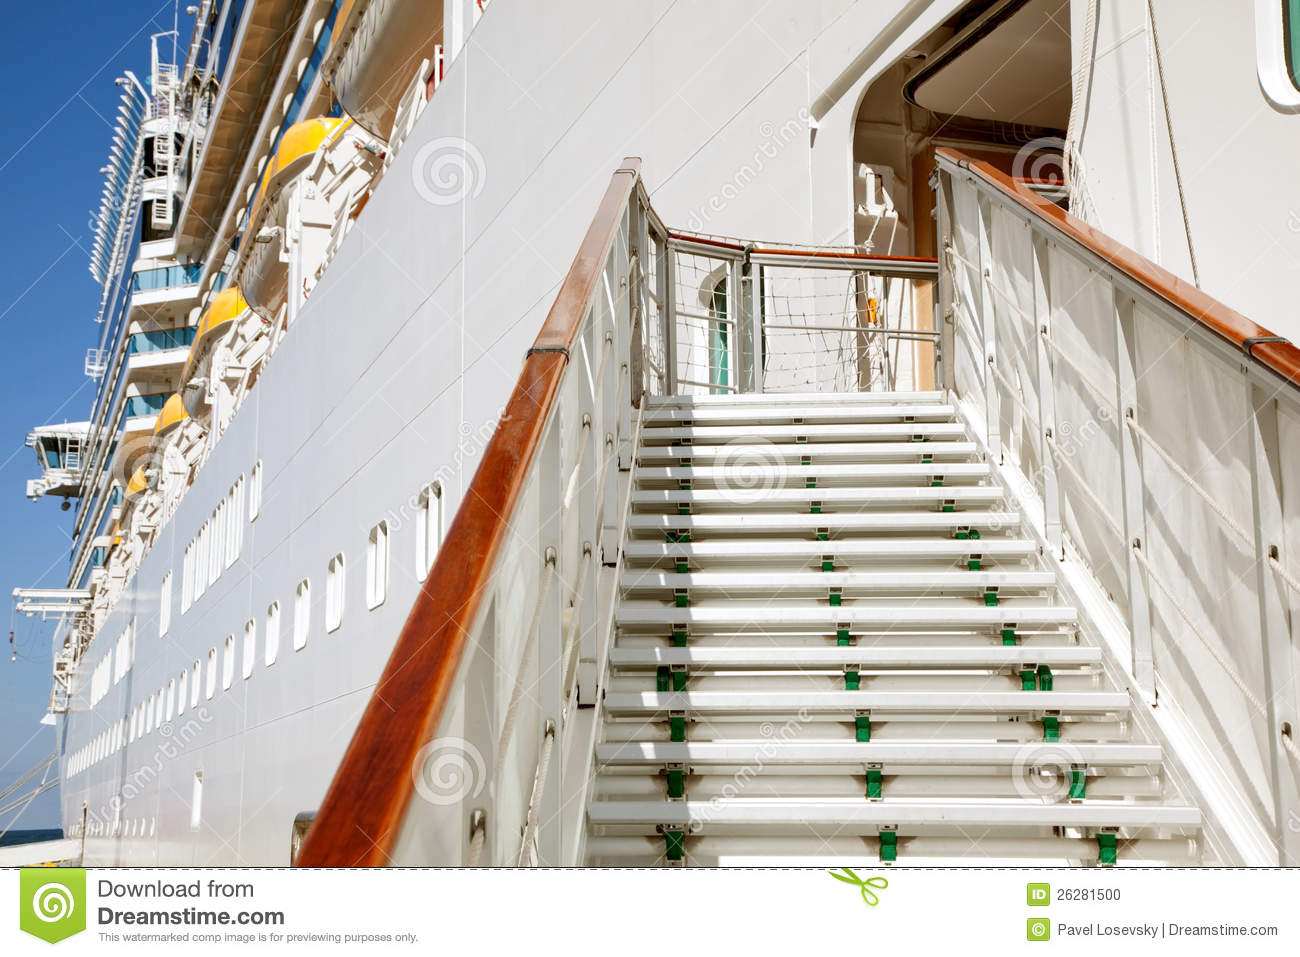 Stairs To Passenger Cruise Ship Stock Photo - Image: 26281500